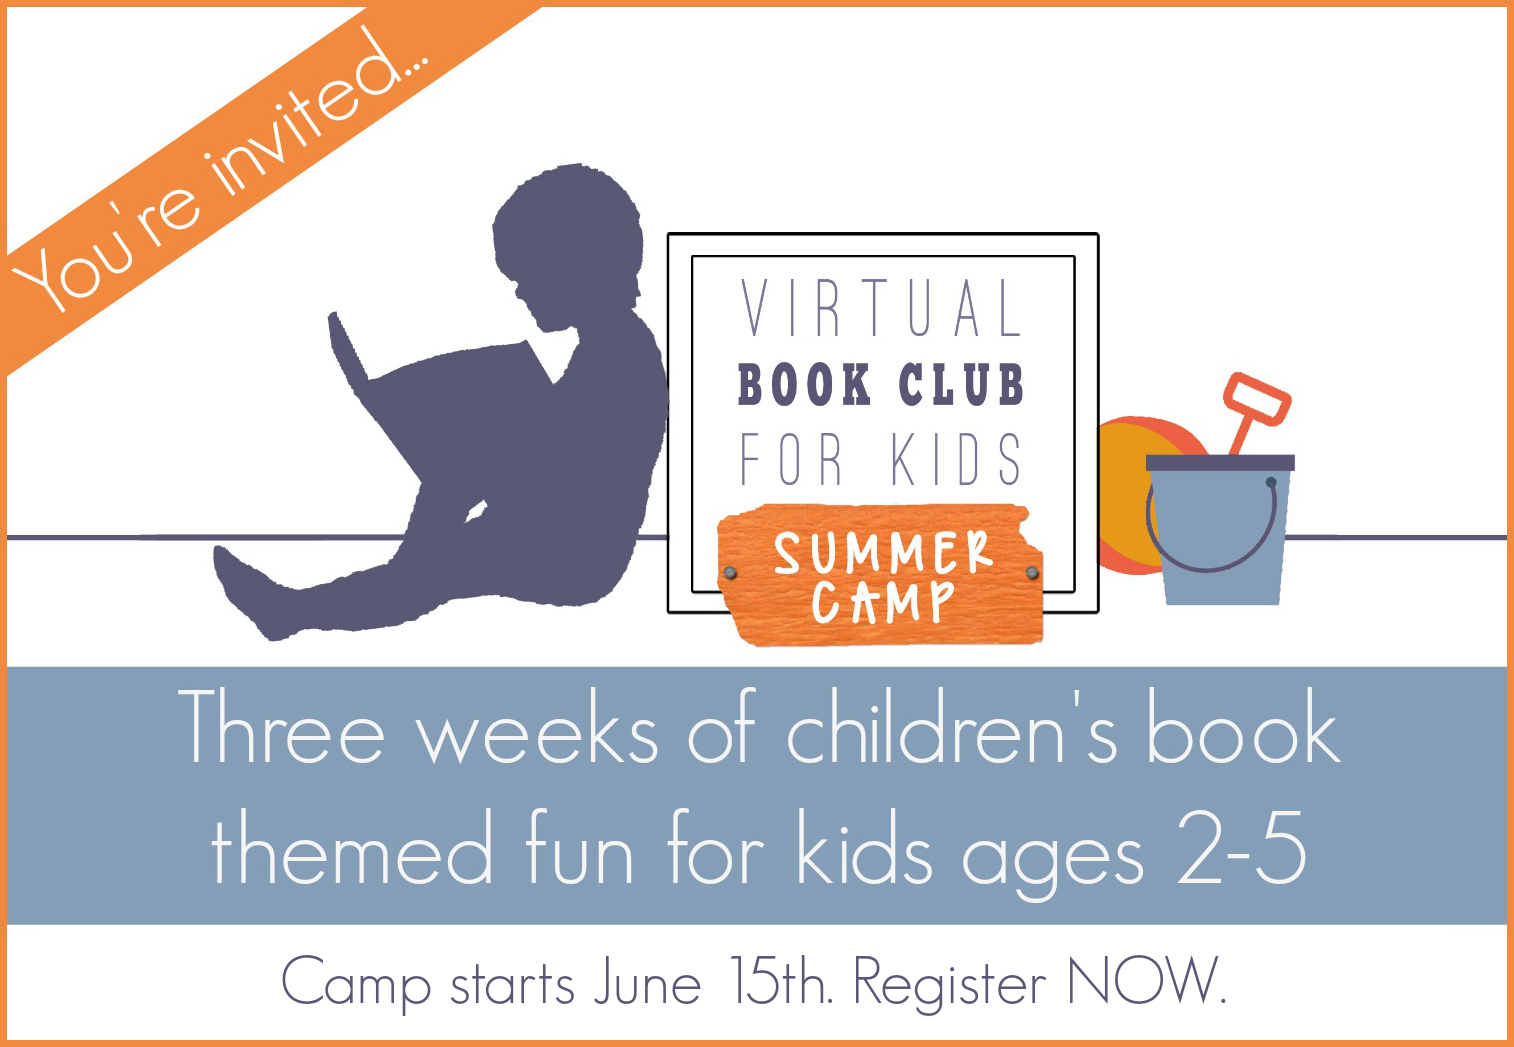 Virtual Book Club for Kids Summer Camp Registration